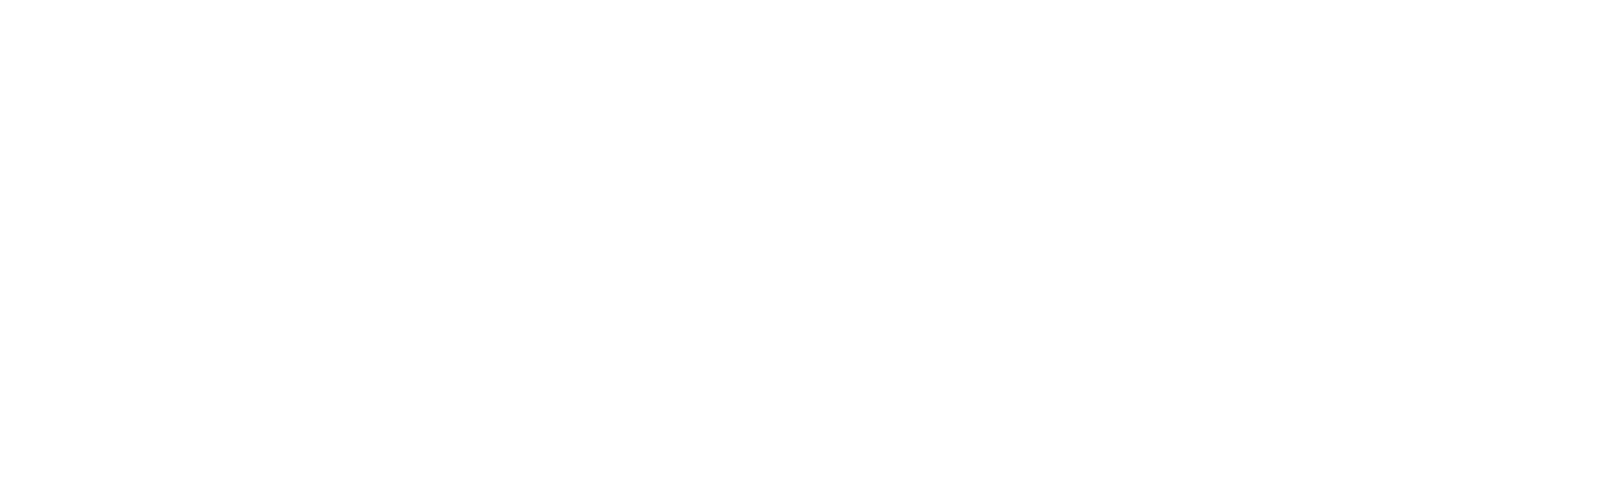 Feldman Sales & Marketing